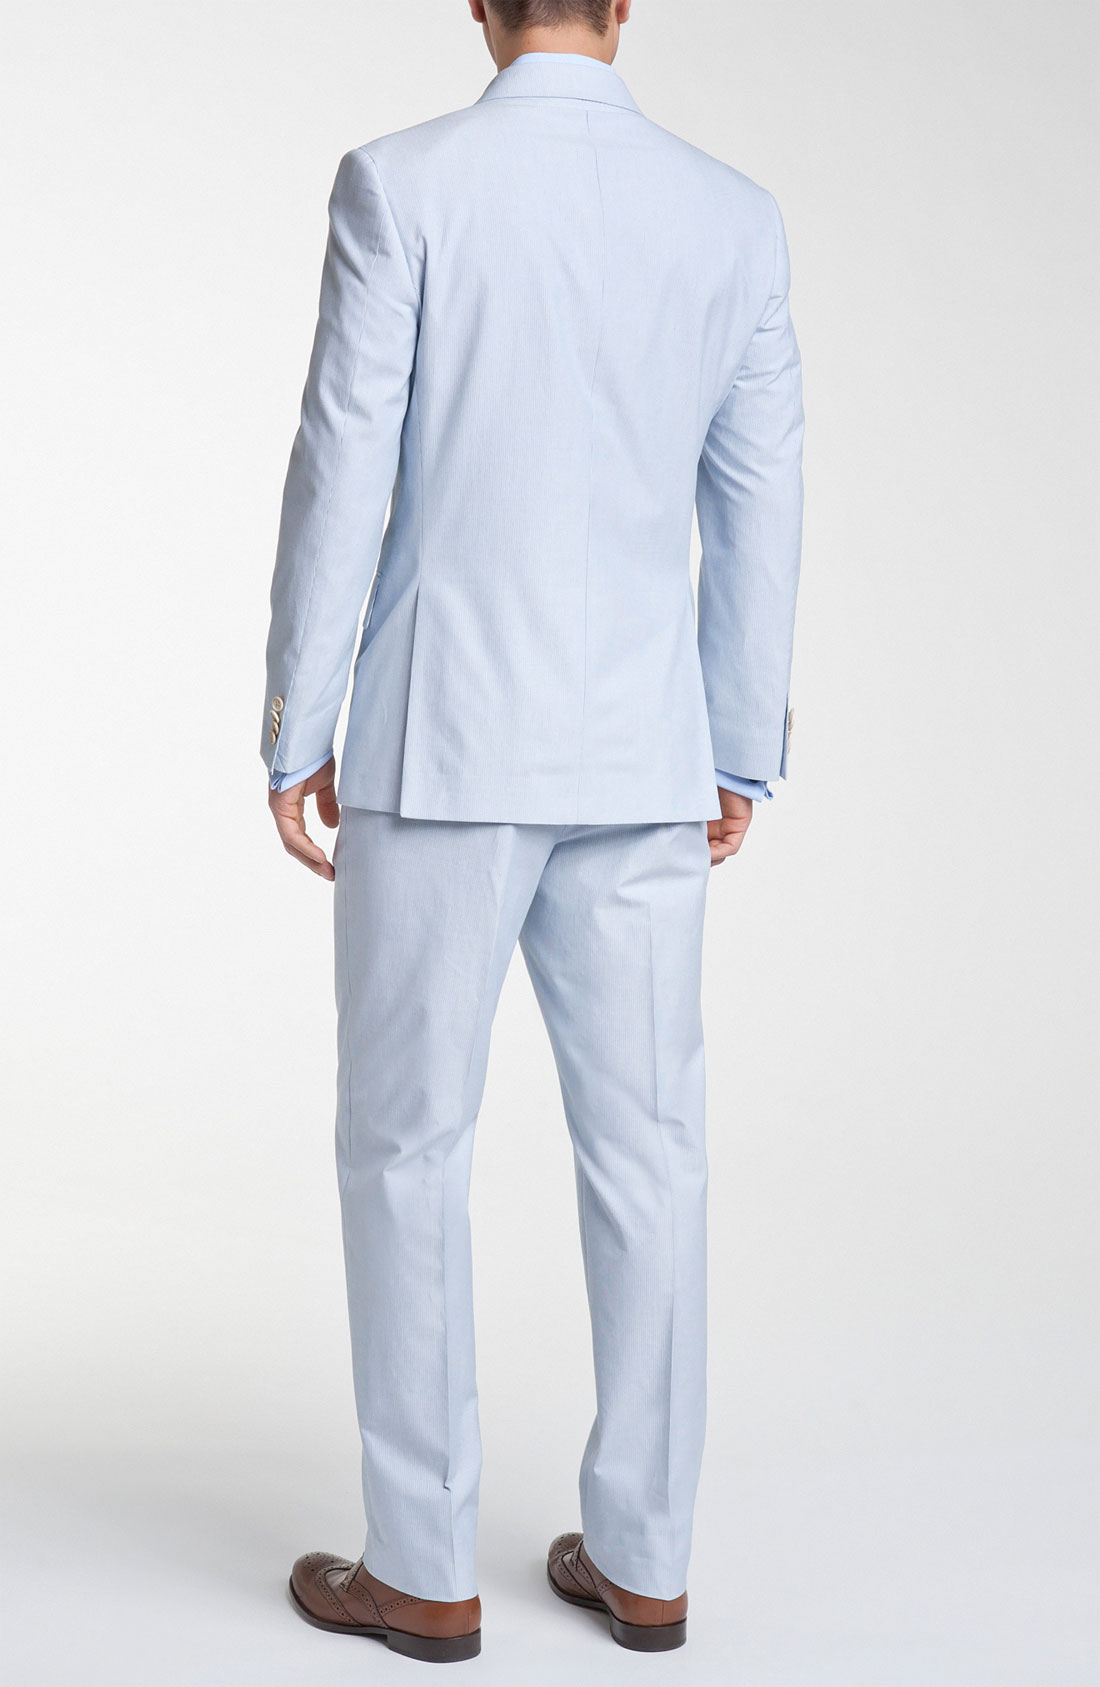 Joseph abboud Double Breasted Cotton Seersucker Suit in Blue for ...